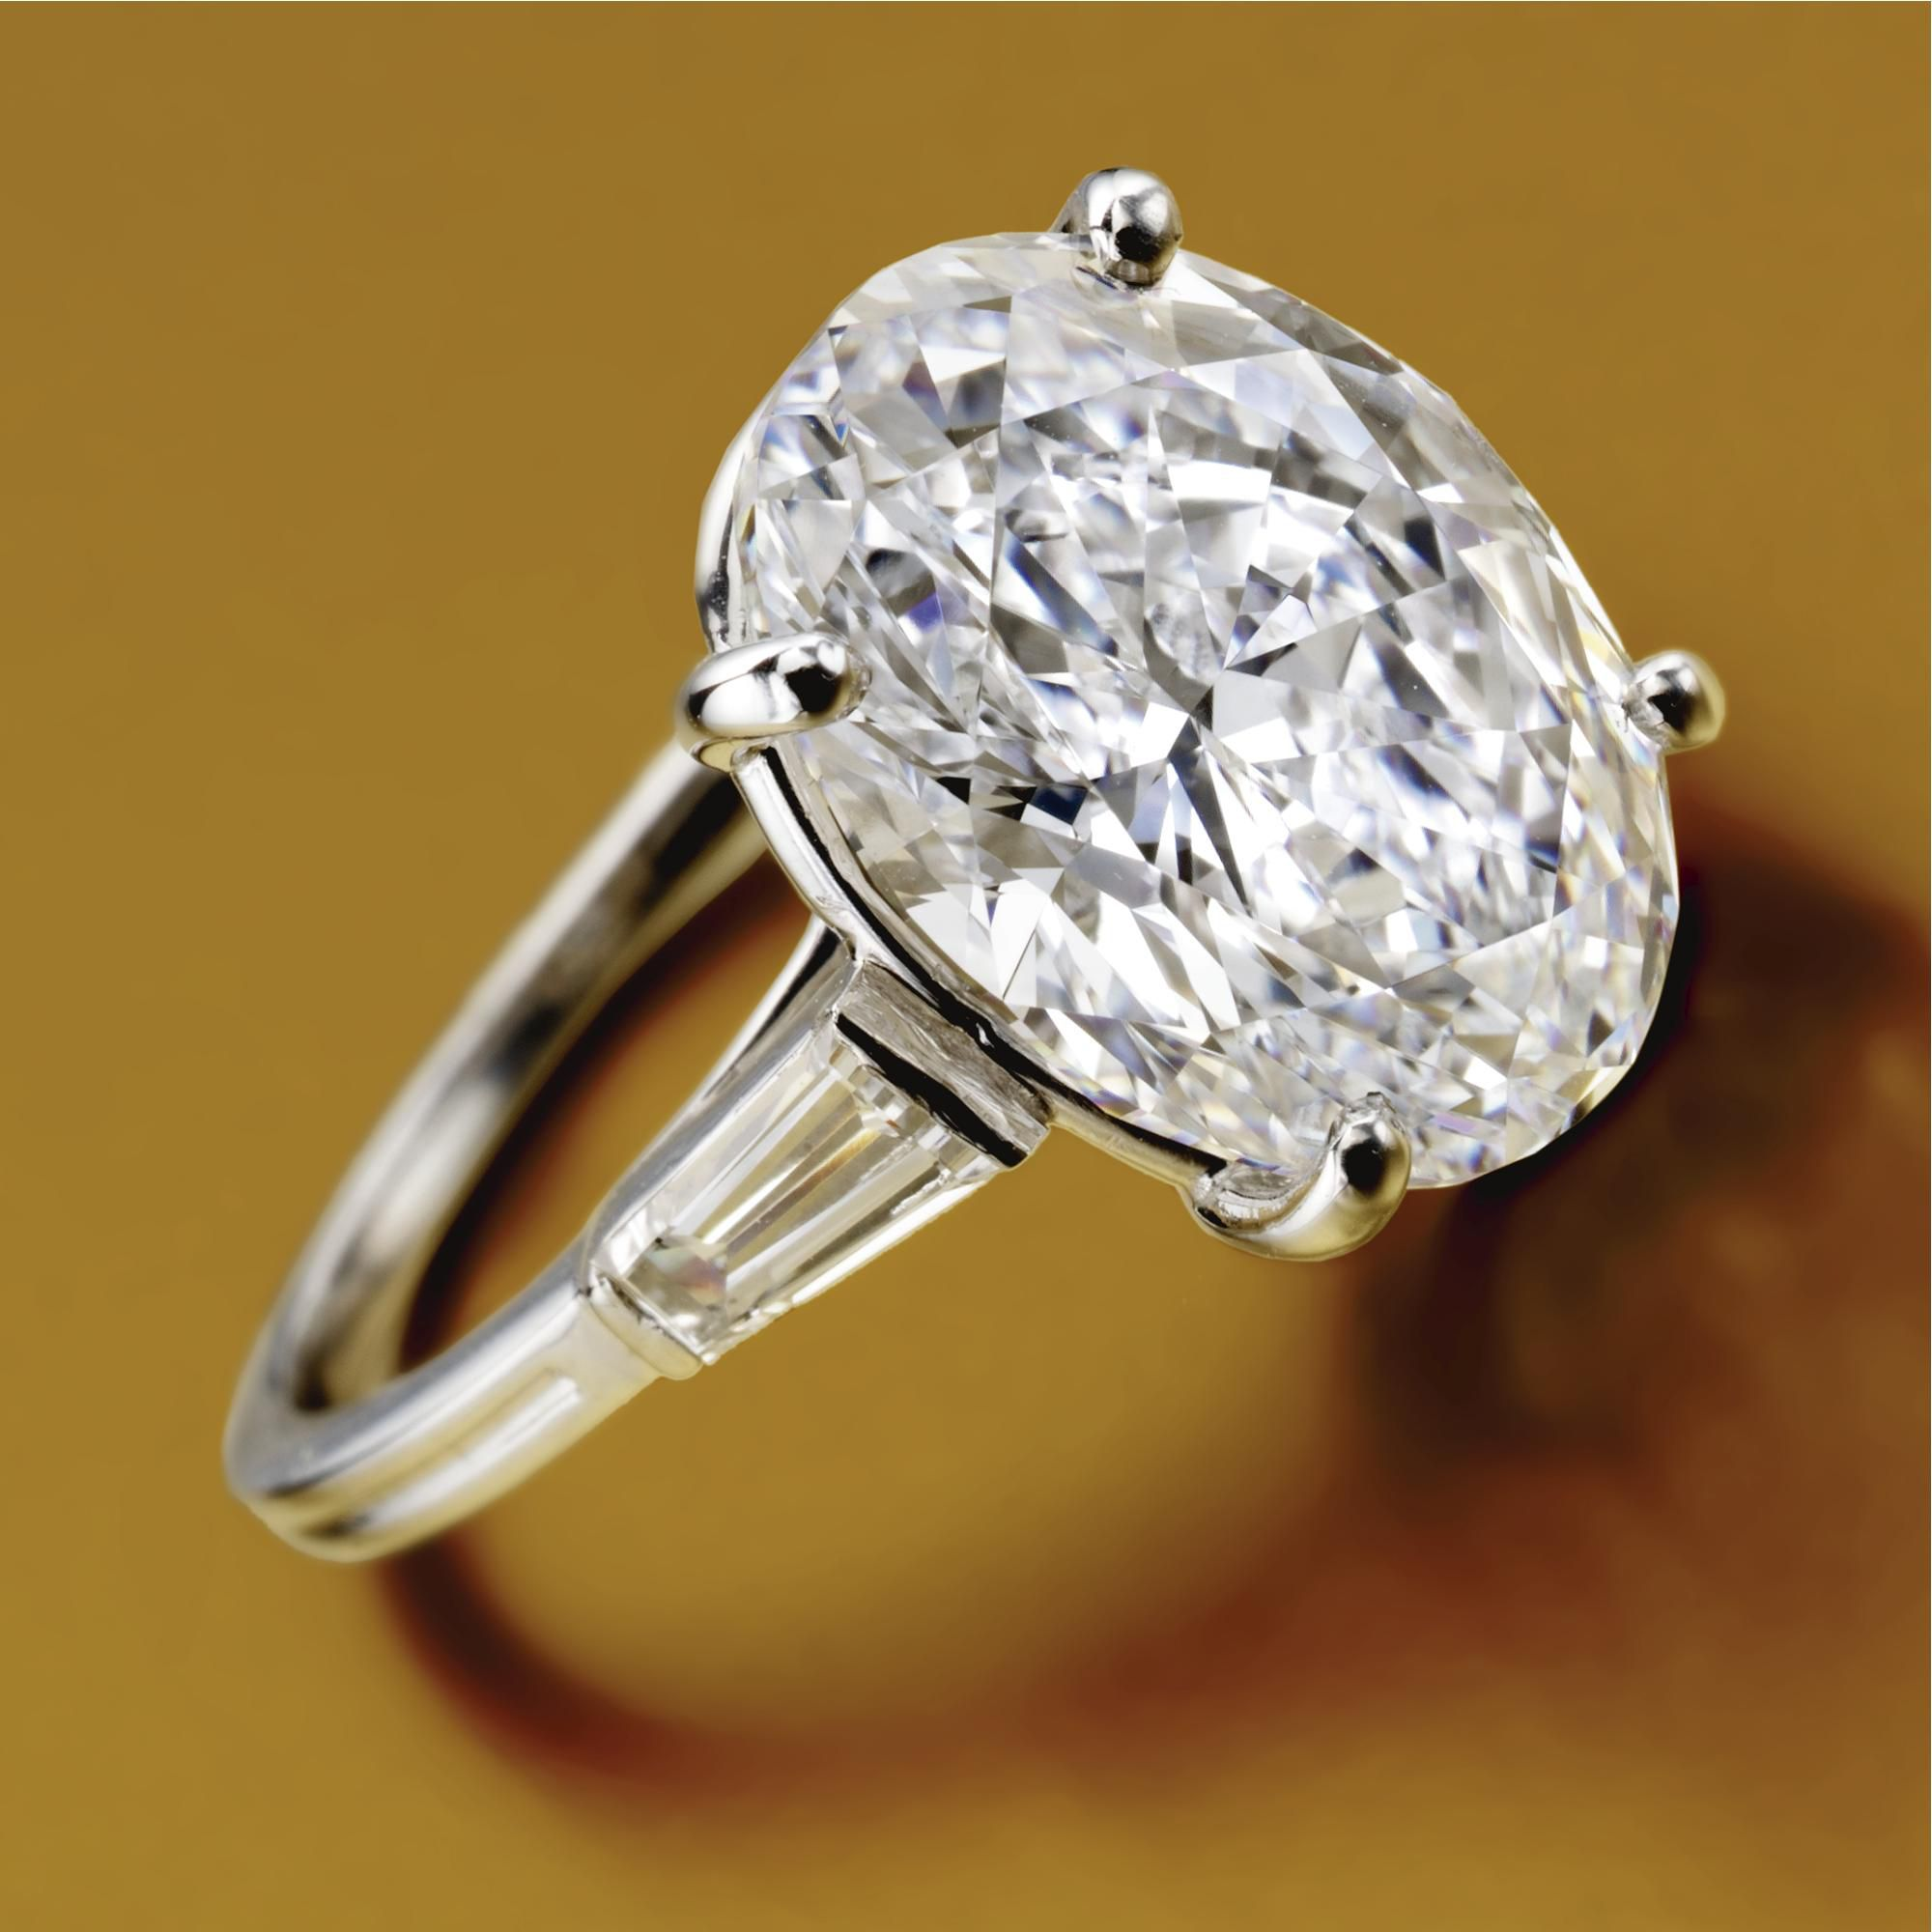 click etoile ctw enlarge thumbnails platinum ring fv in to co itm rings tiffany engagement diamond